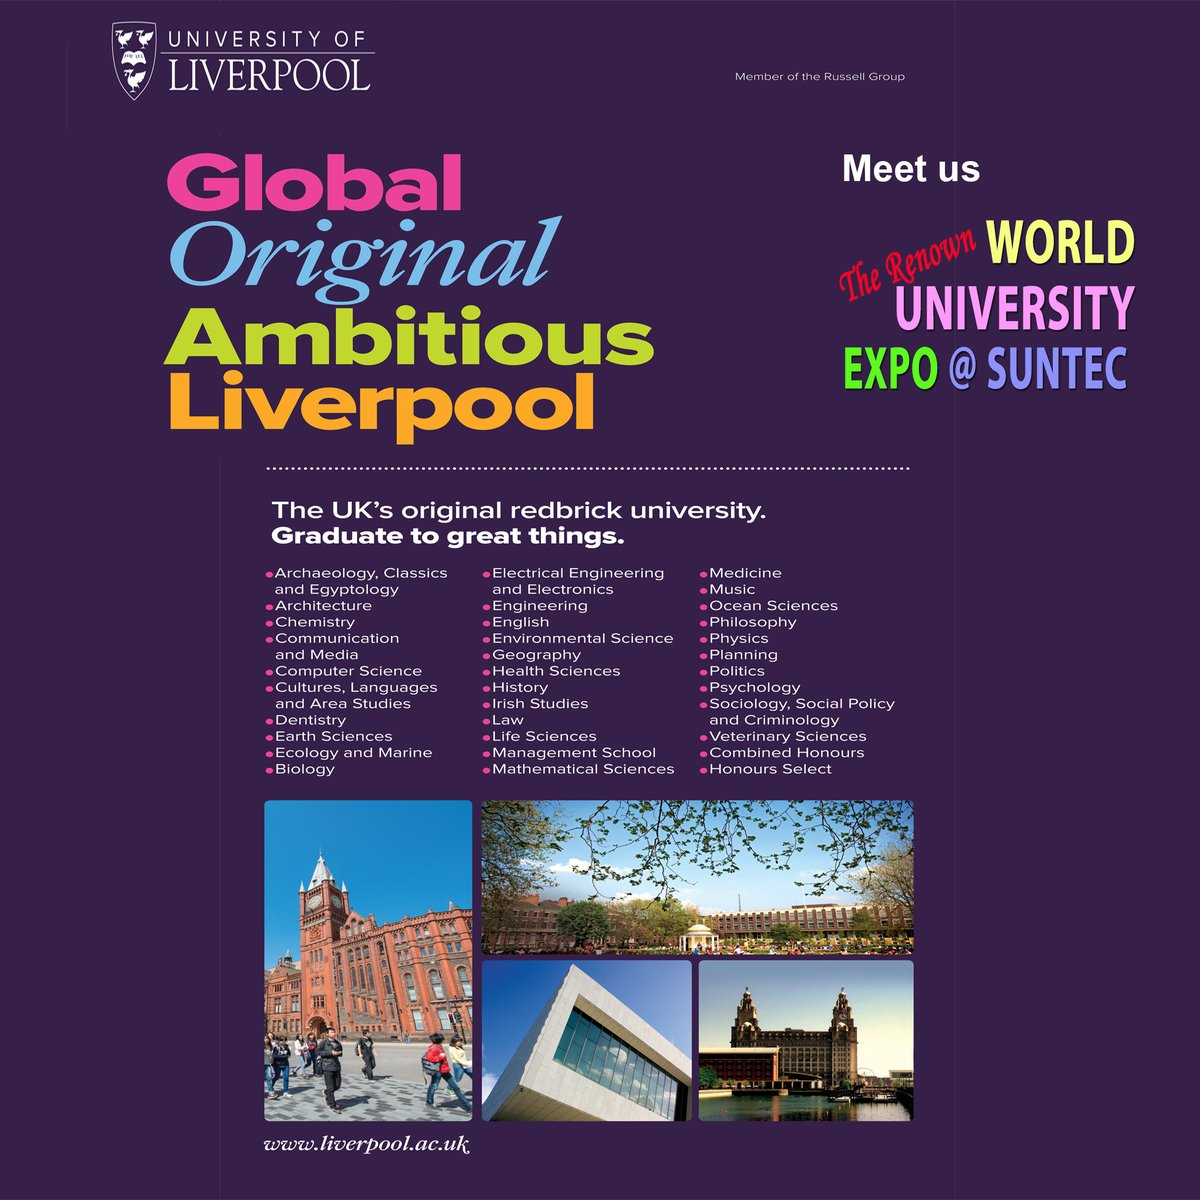 Meet Uni of Liverpool at WorldUniExpo on Fri 17 Jan 3-9pm at Suntec Level 3 Concourse. Degree in Criminology, Architecture, HealthScience, Aviation, Occ Therapy, etc. Visit http://Liverpool.OverseasEducation.sg or Call 61009800 for more info. Rmb to bring your results for free applications!!pic.twitter.com/veGZye60KK